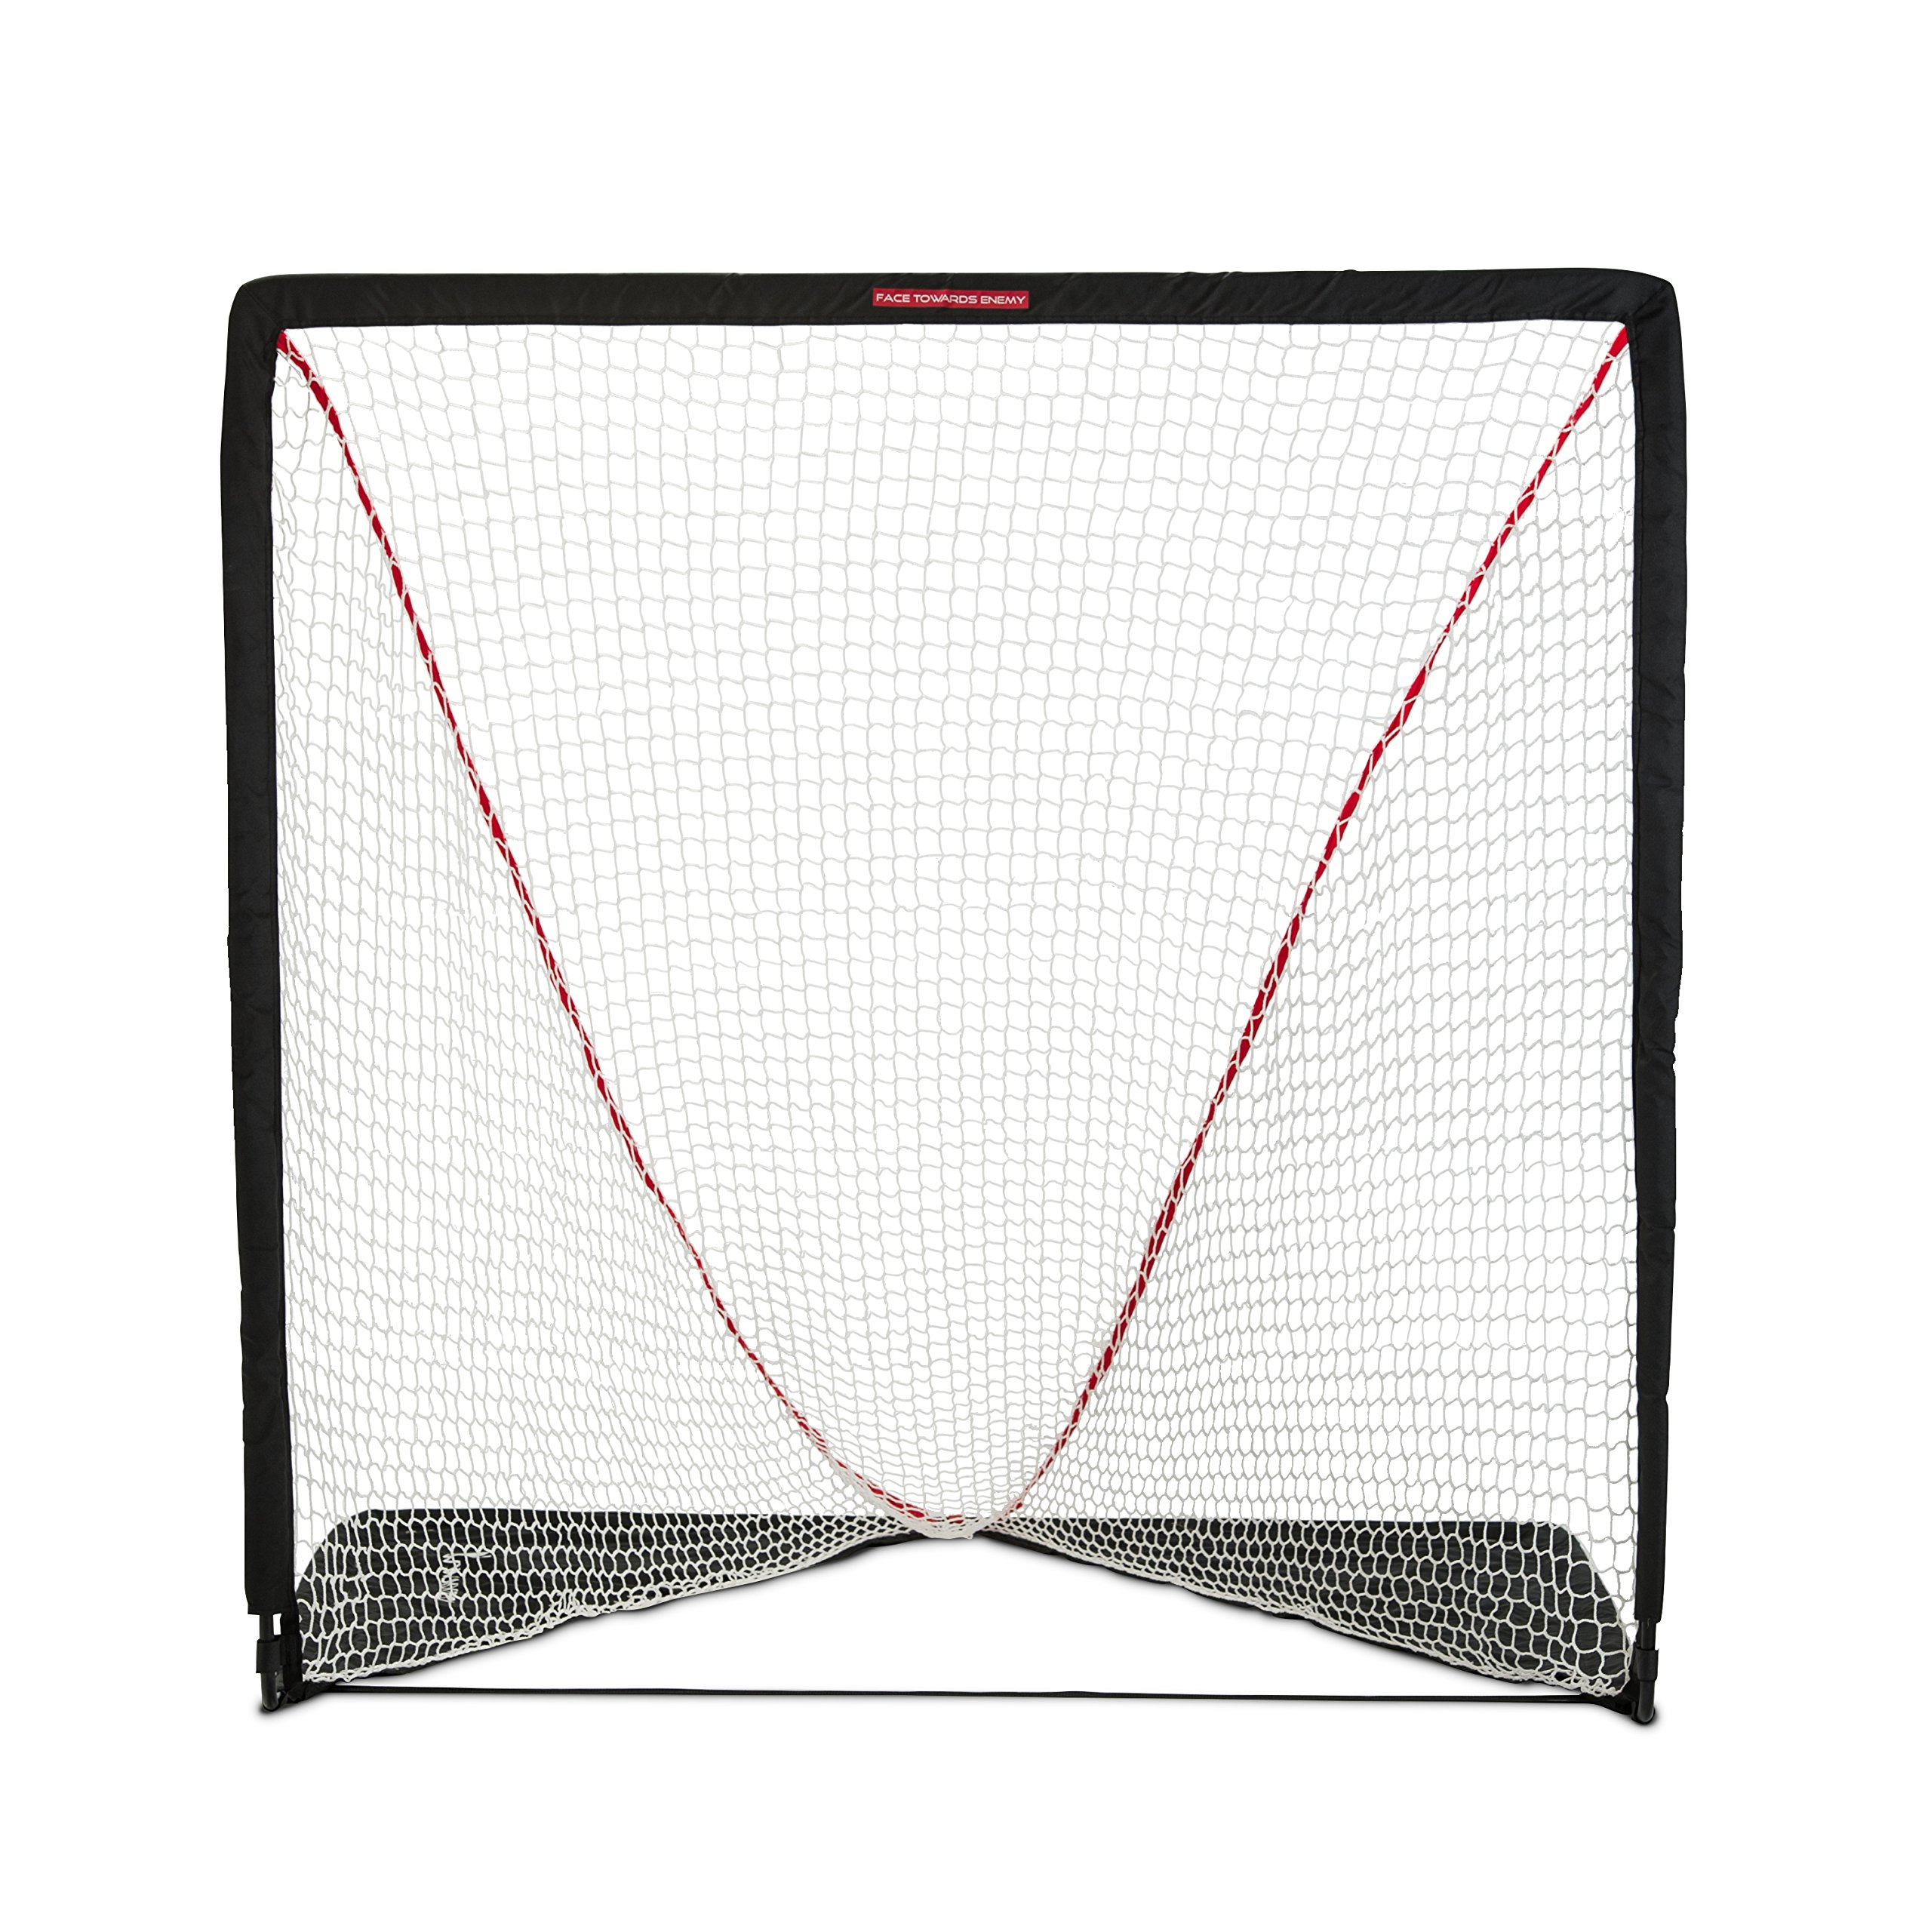 Rukket Rip It Portable Lacrosse Goal | Pop Up Lax Net for Backyard Shooting | Collapsible, Foldable, Travel Goals (6x6) by Rukket Sports